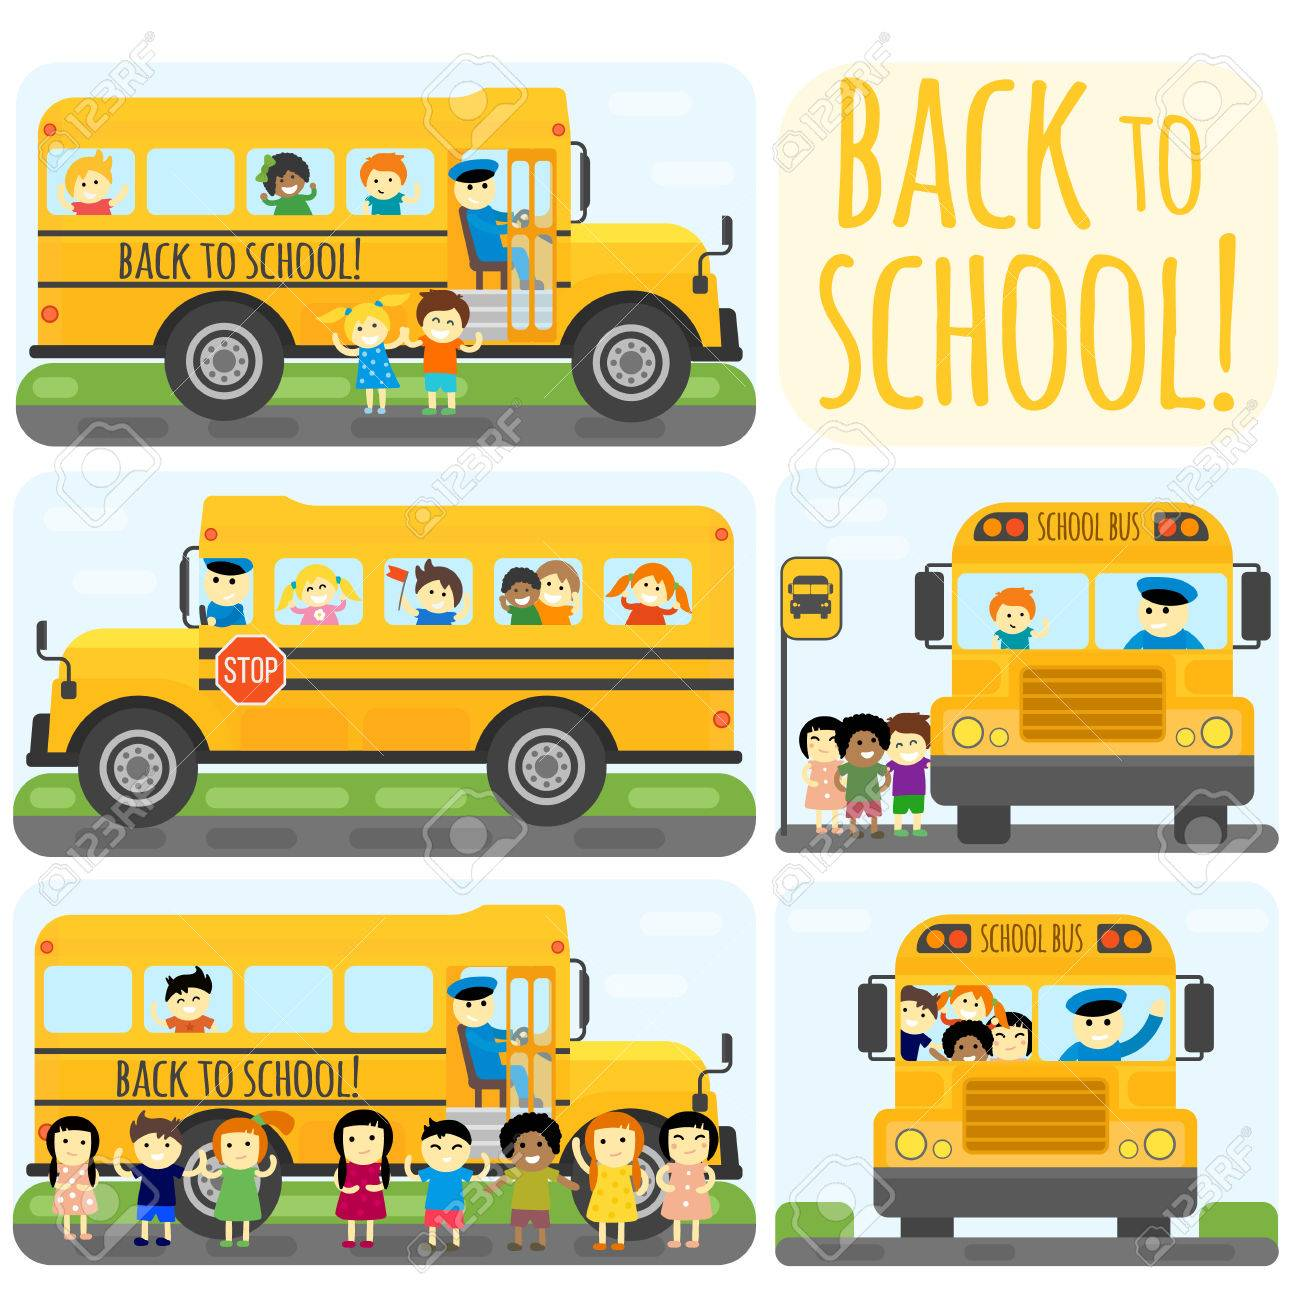 illustration of kids riding yelliw schoolbus transportation